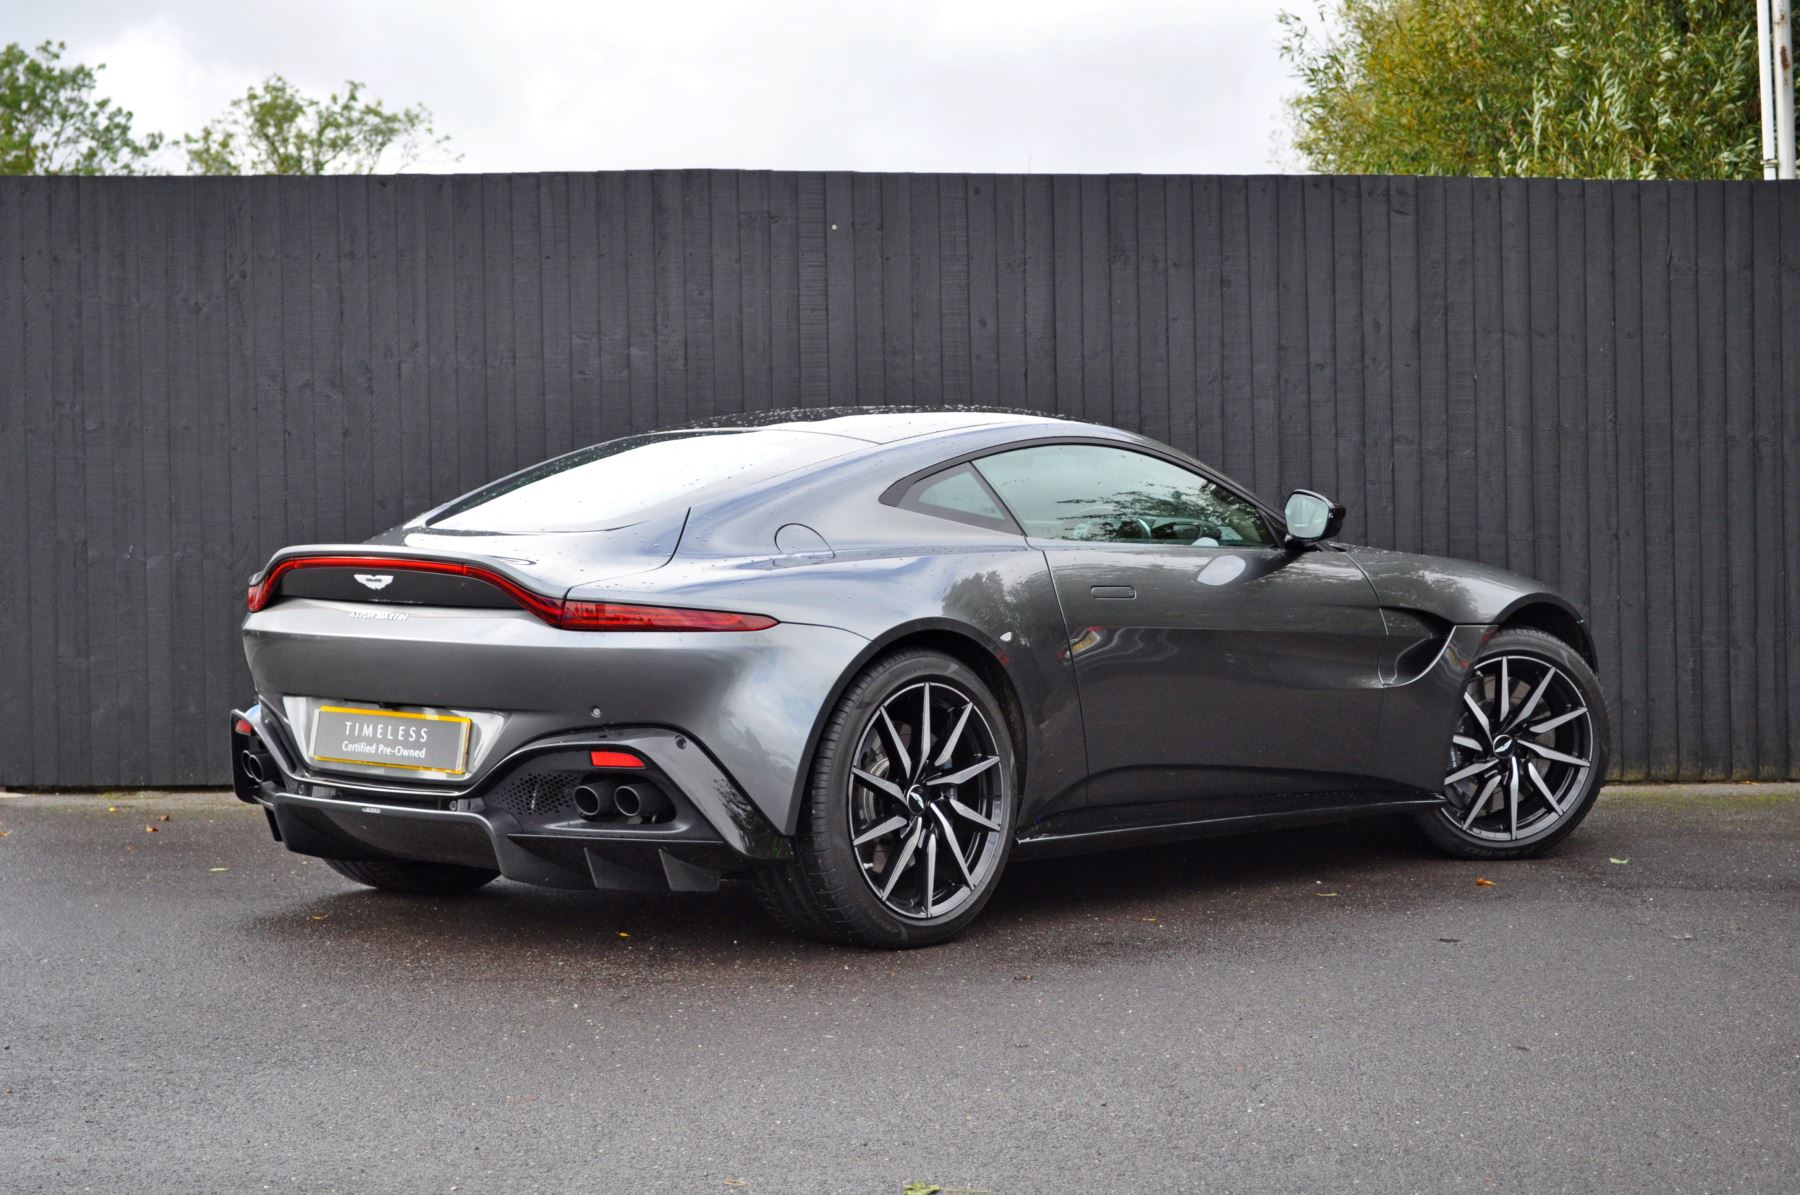 Aston Martin New Vantage 2dr ZF 8 Speed image 5